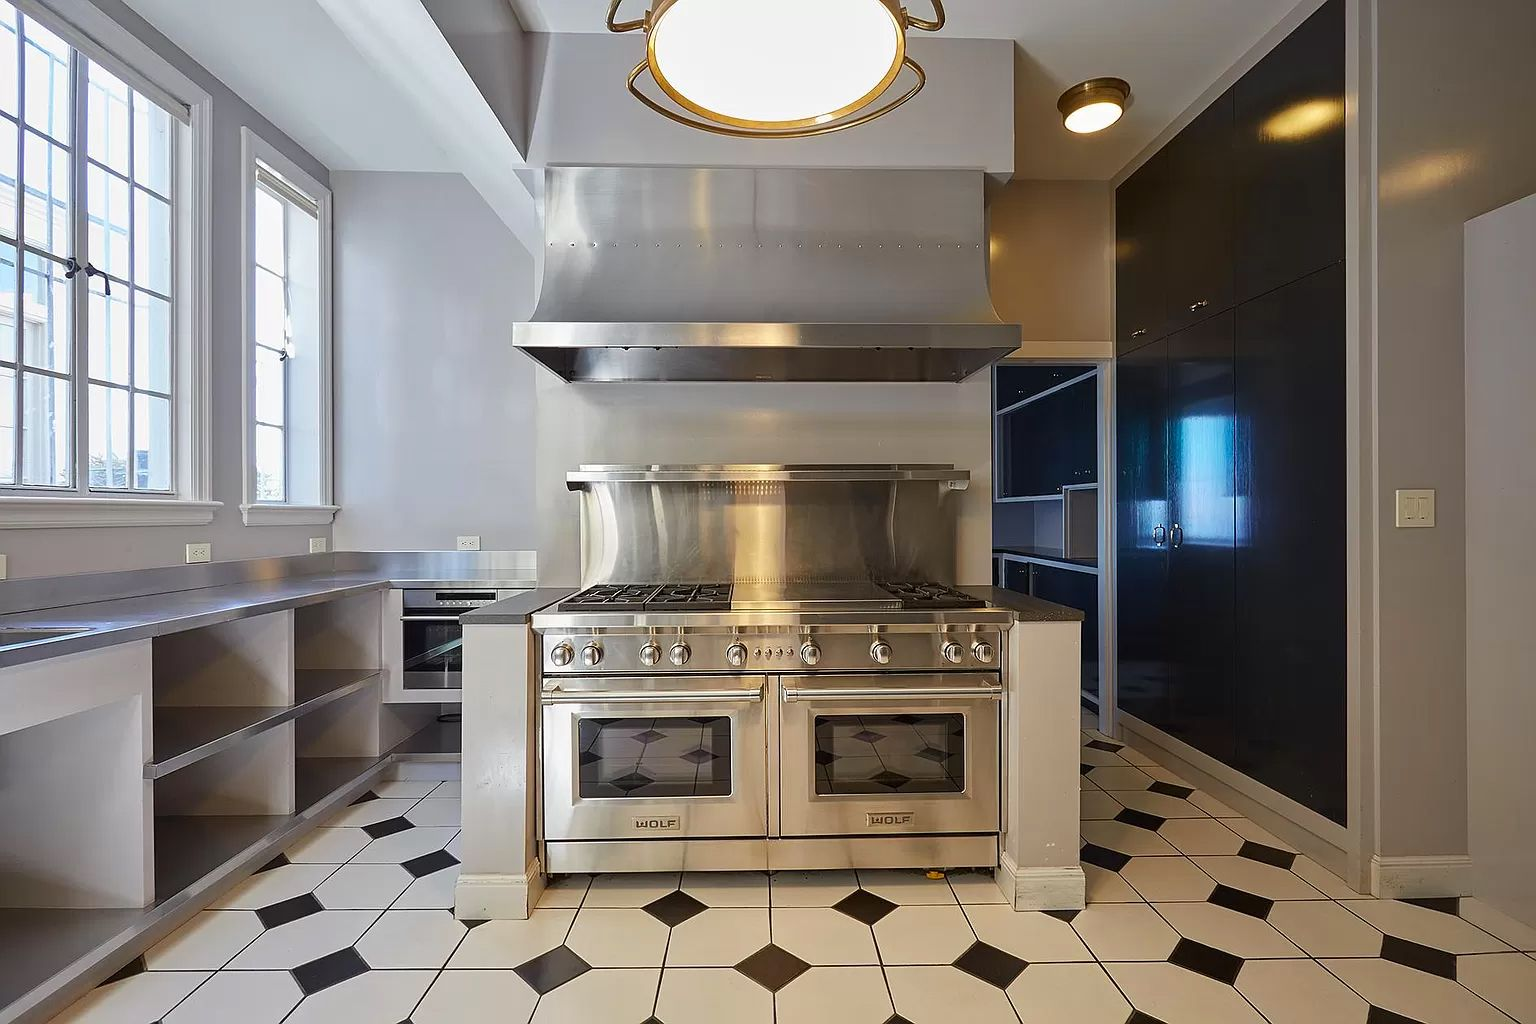 58c4d 2920 broadway kitchen Seven Bedroom Pac Heights Mansion Sets New Record for Most Expensive Home Sold In SF at $43.5M